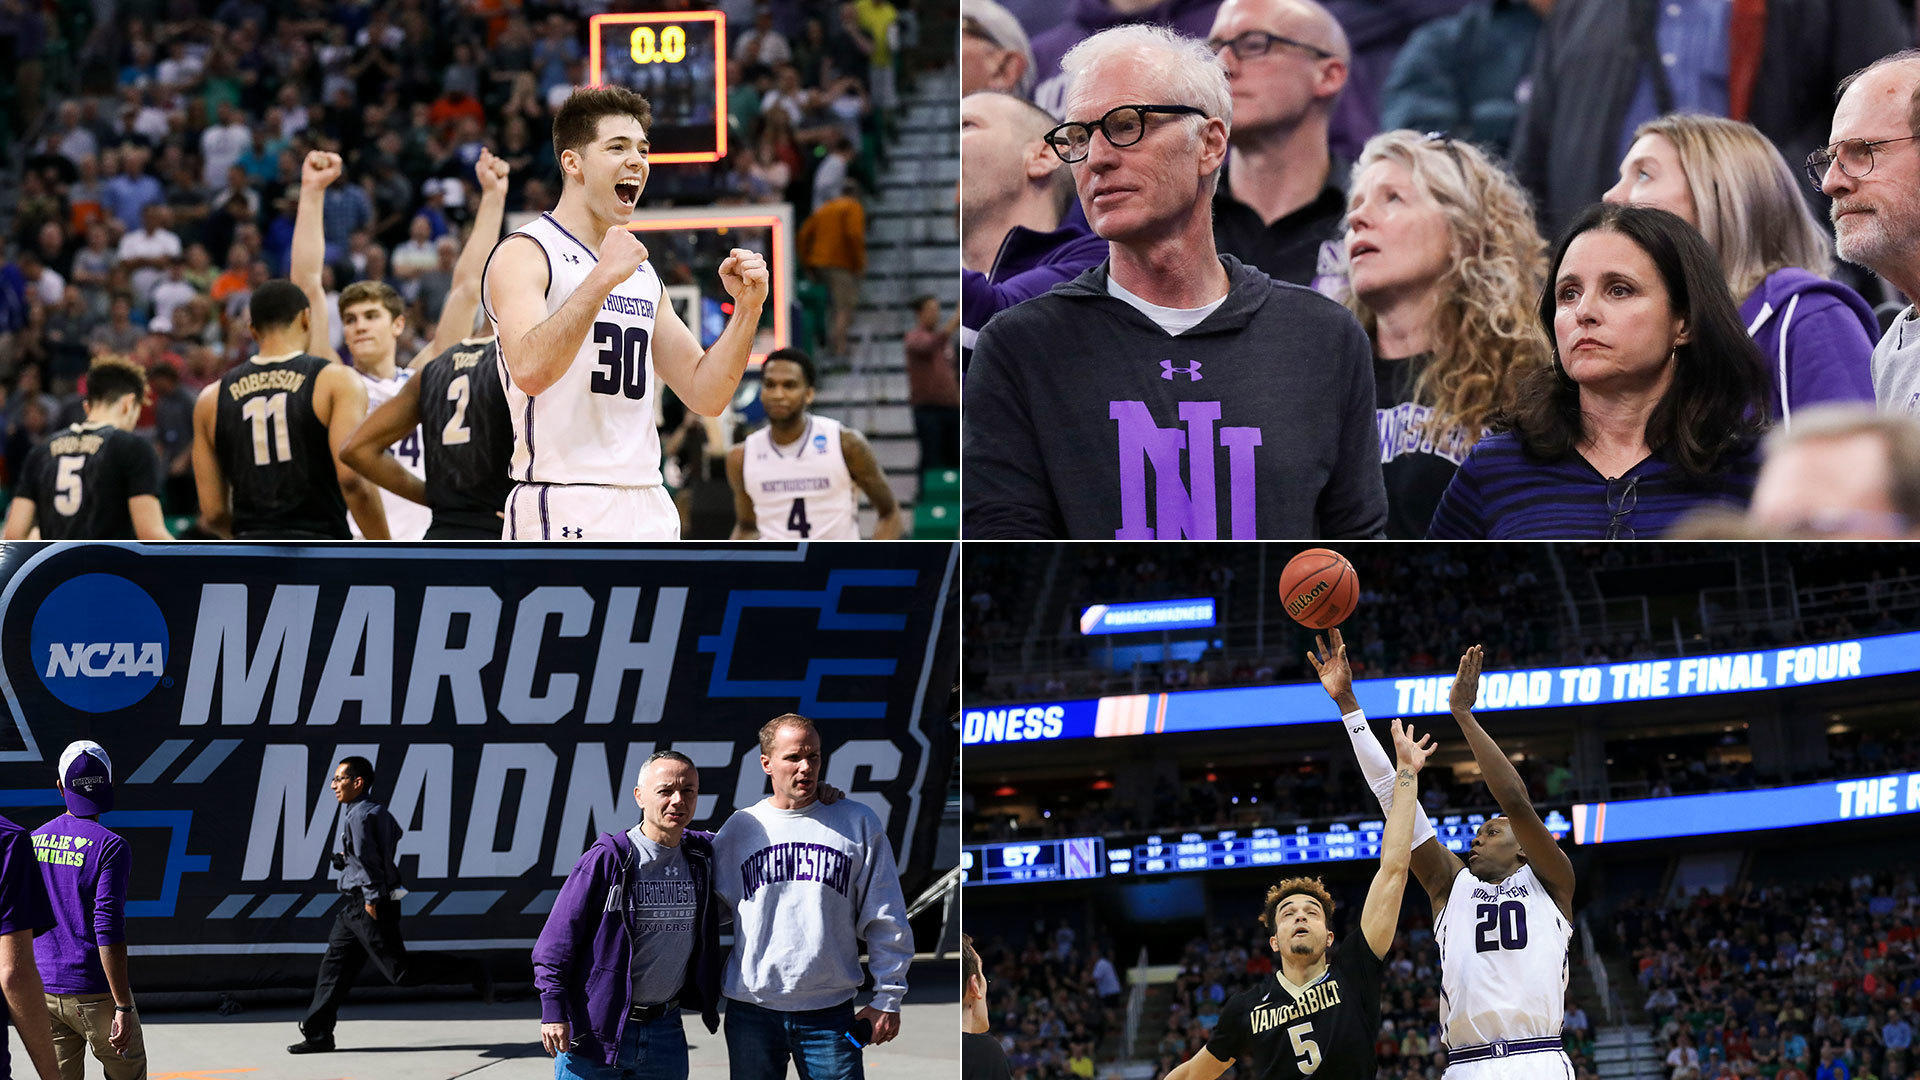 Ct-spt-northwestern-basketball-ncaa-tournament-looking-back-20171116